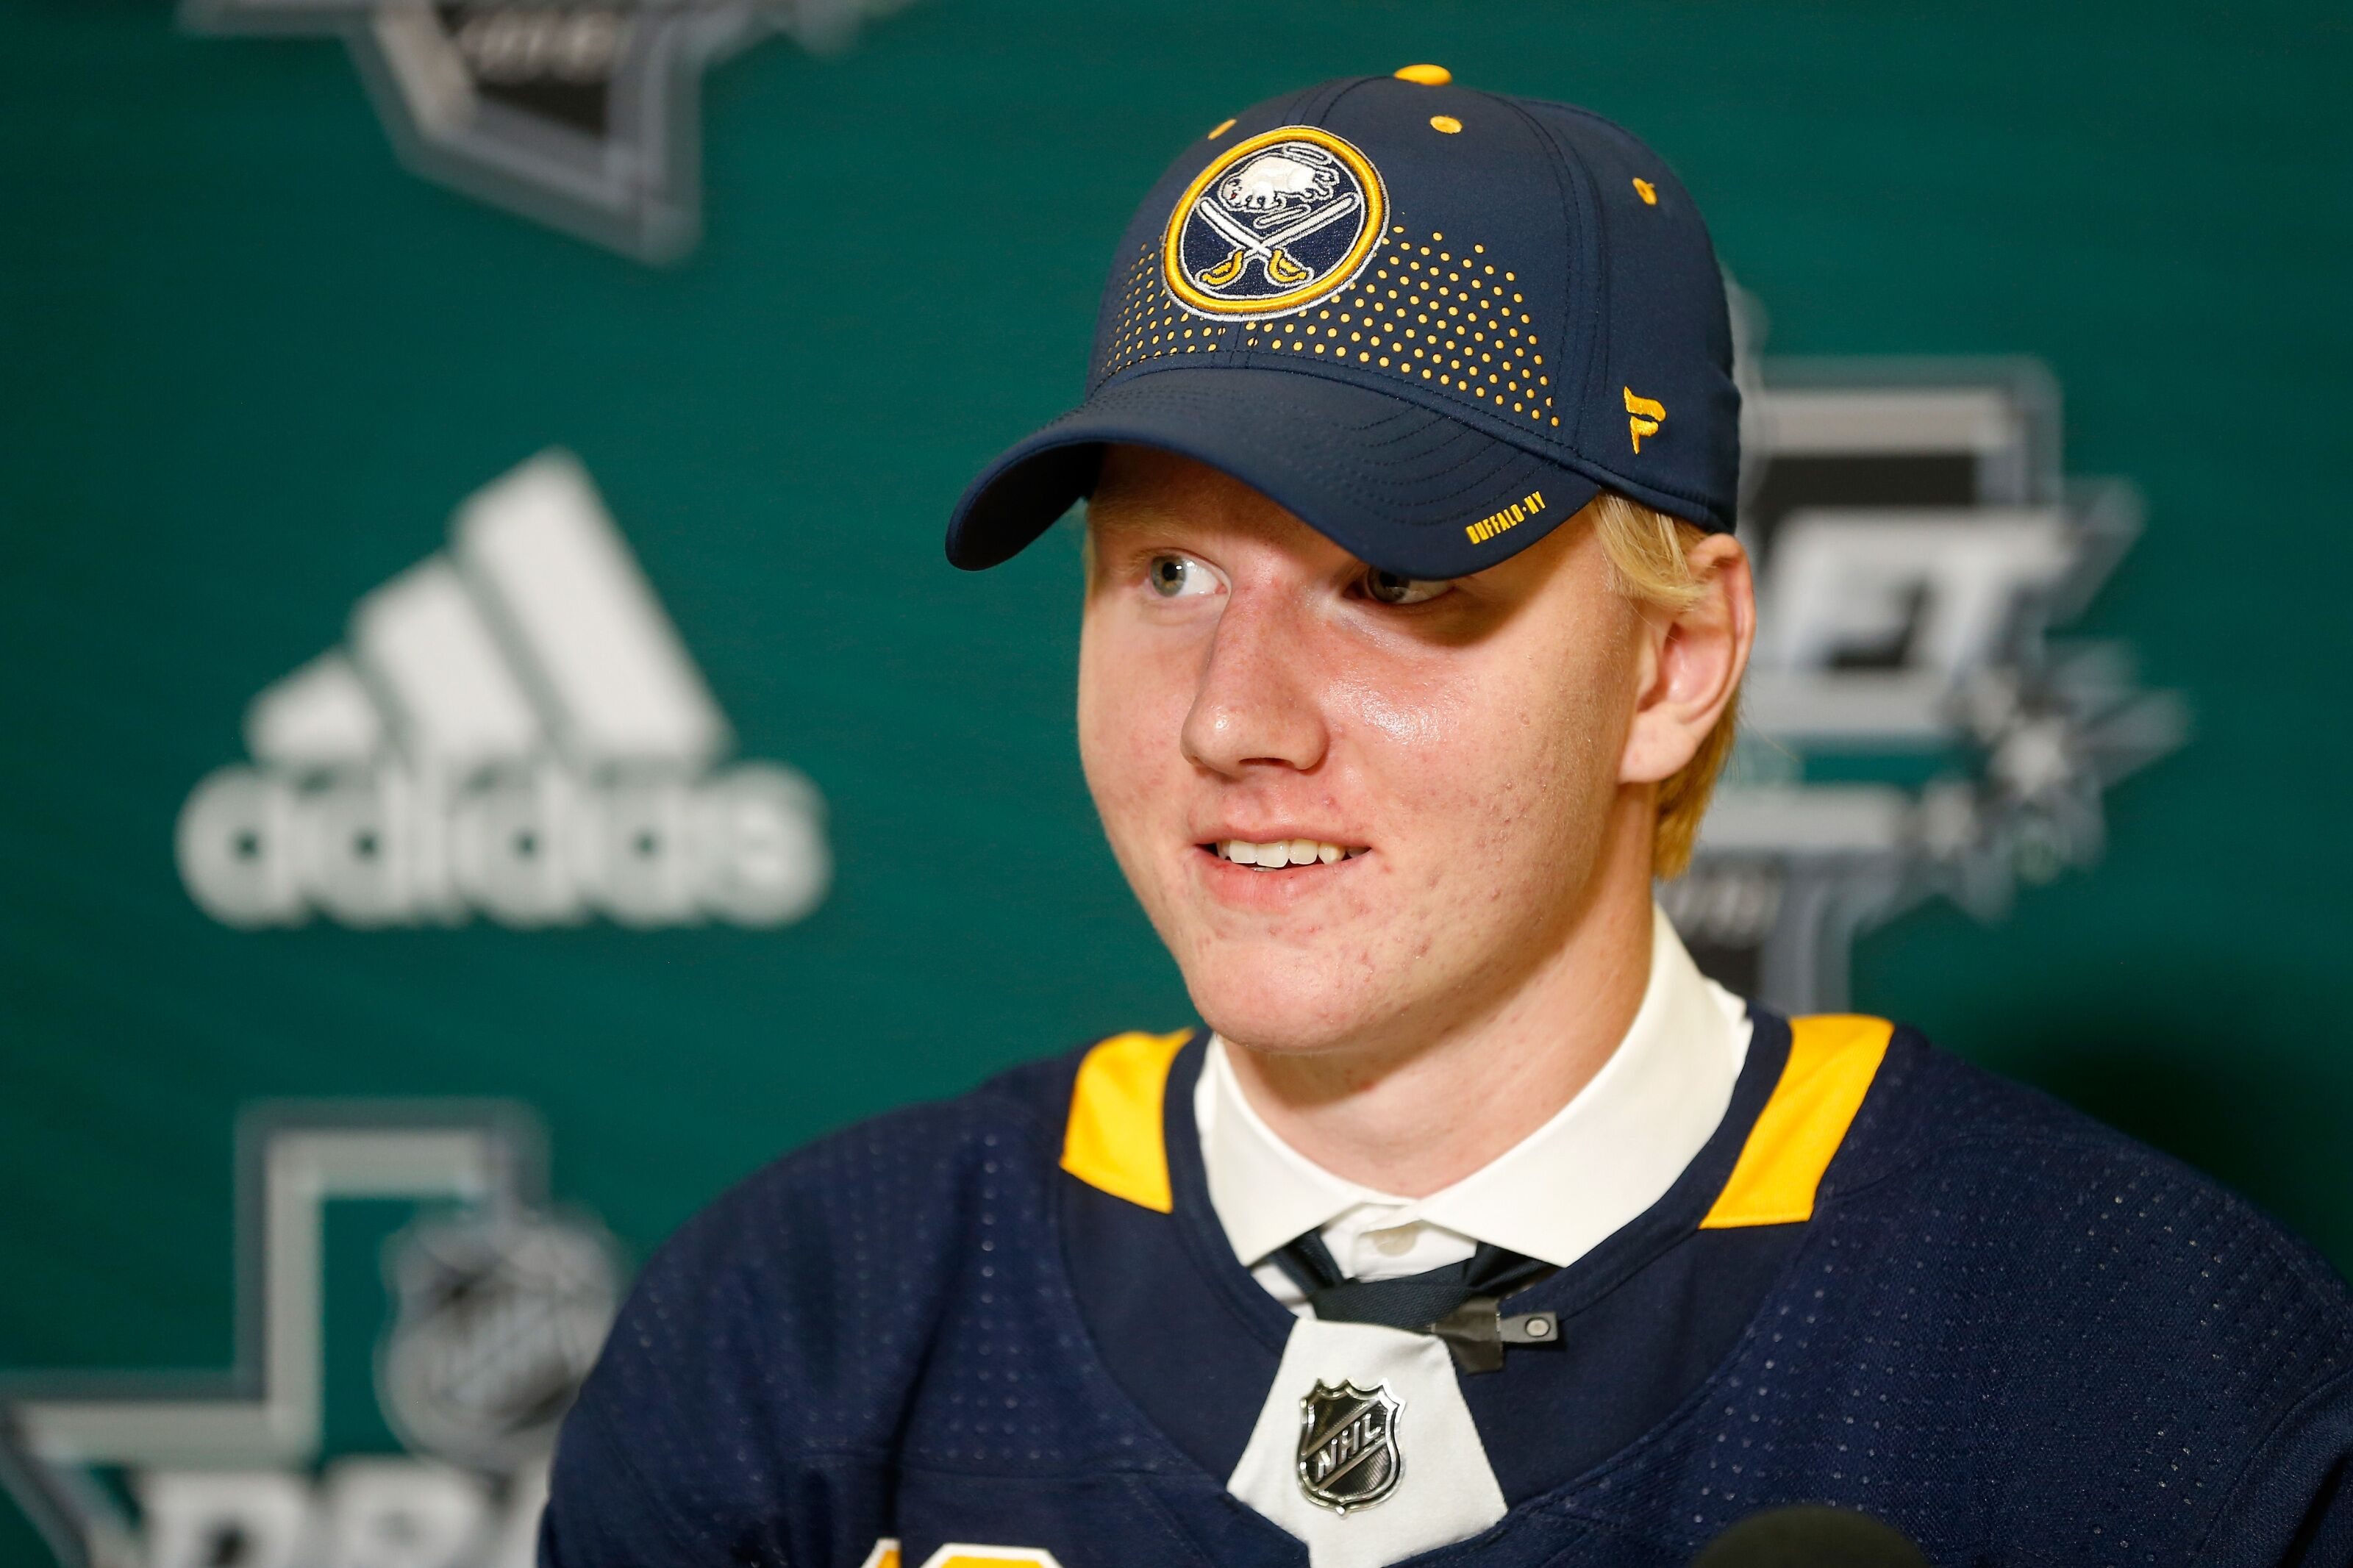 DALLAS, TX - JUNE 22: Rasmus Dahlin answers questions from the media after being selected first overall by the Buffalo Sabres during the first round of the 2018 NHL Draft at American Airlines Center on June 22, 2018 in Dallas, Texas. (Photo by Ron Jenkins/Getty Images)